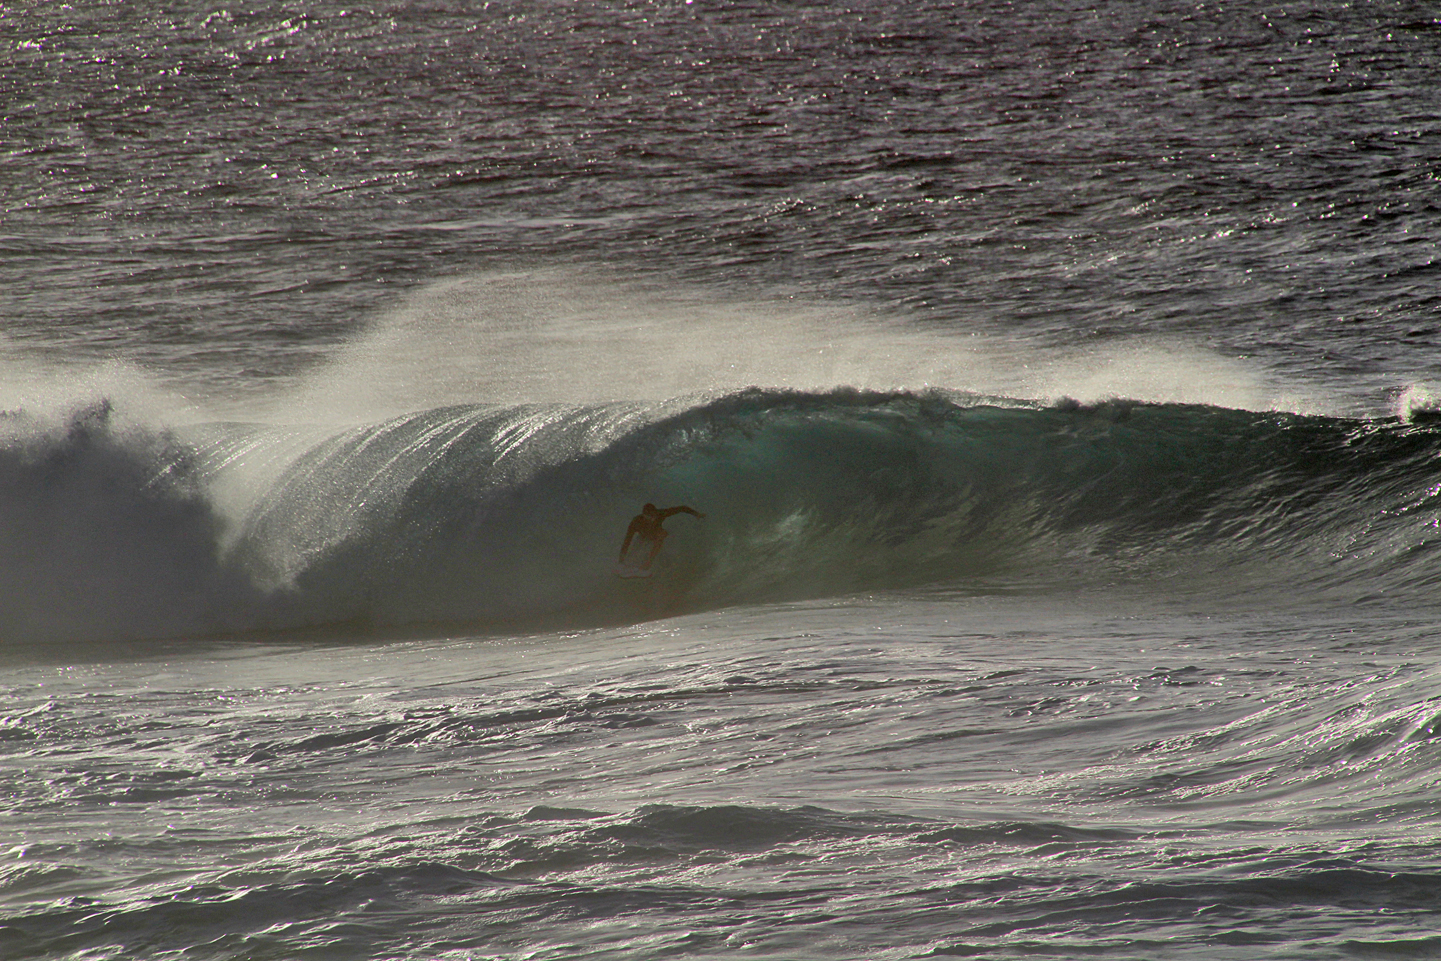 A surfer getting barrelled at Pipeline.